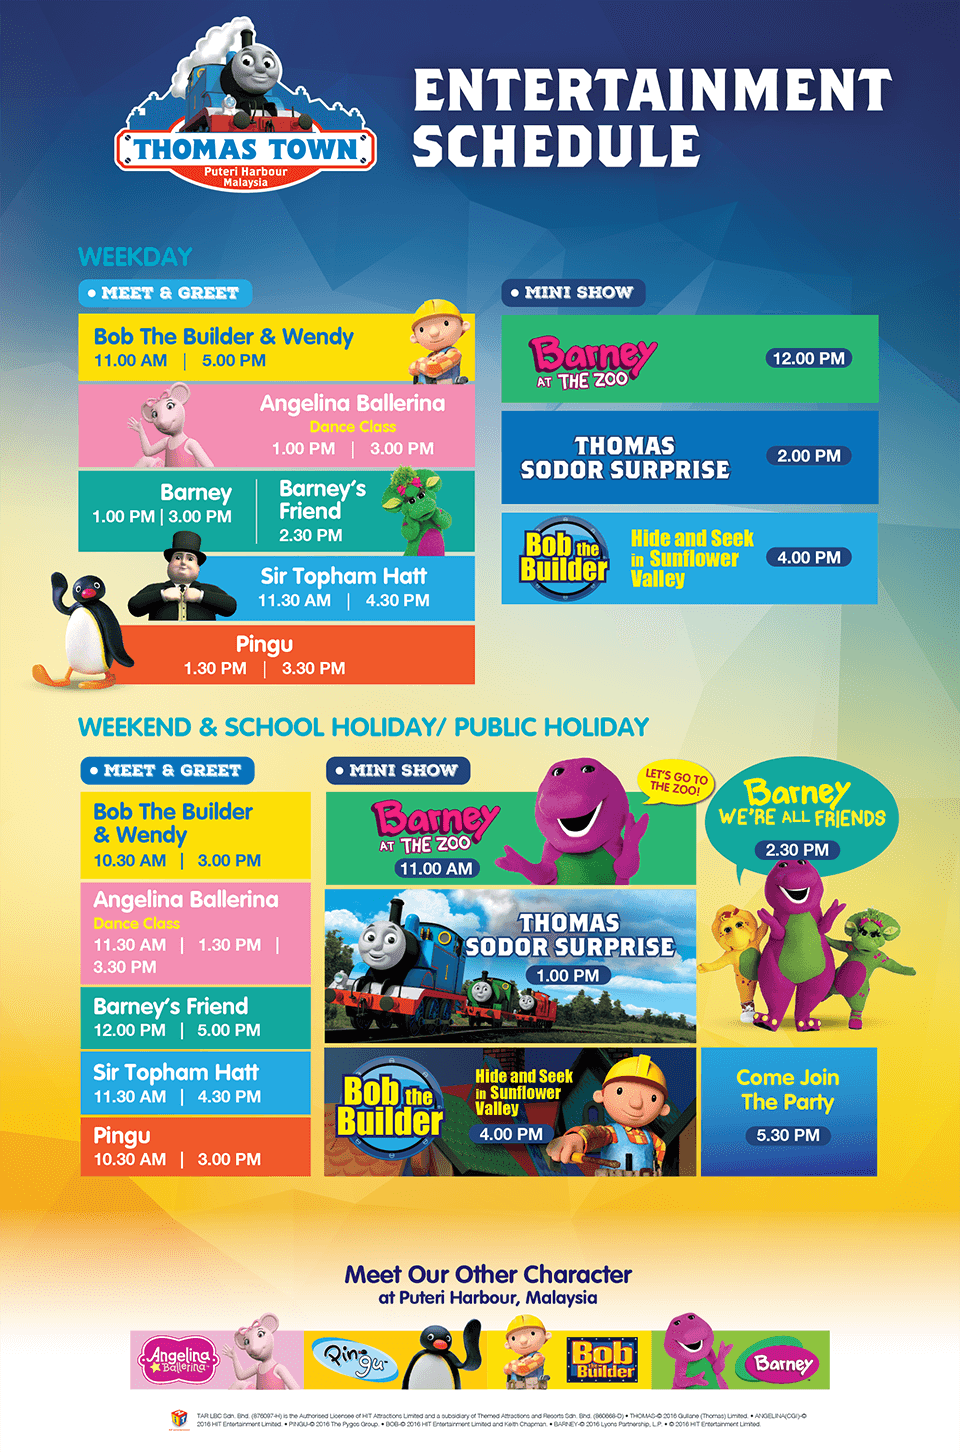 Hello kitty town puteri harbour family theme park johor bahru malaysia -  Check Out The Entertainment Schedule For Hello Kitty Town And